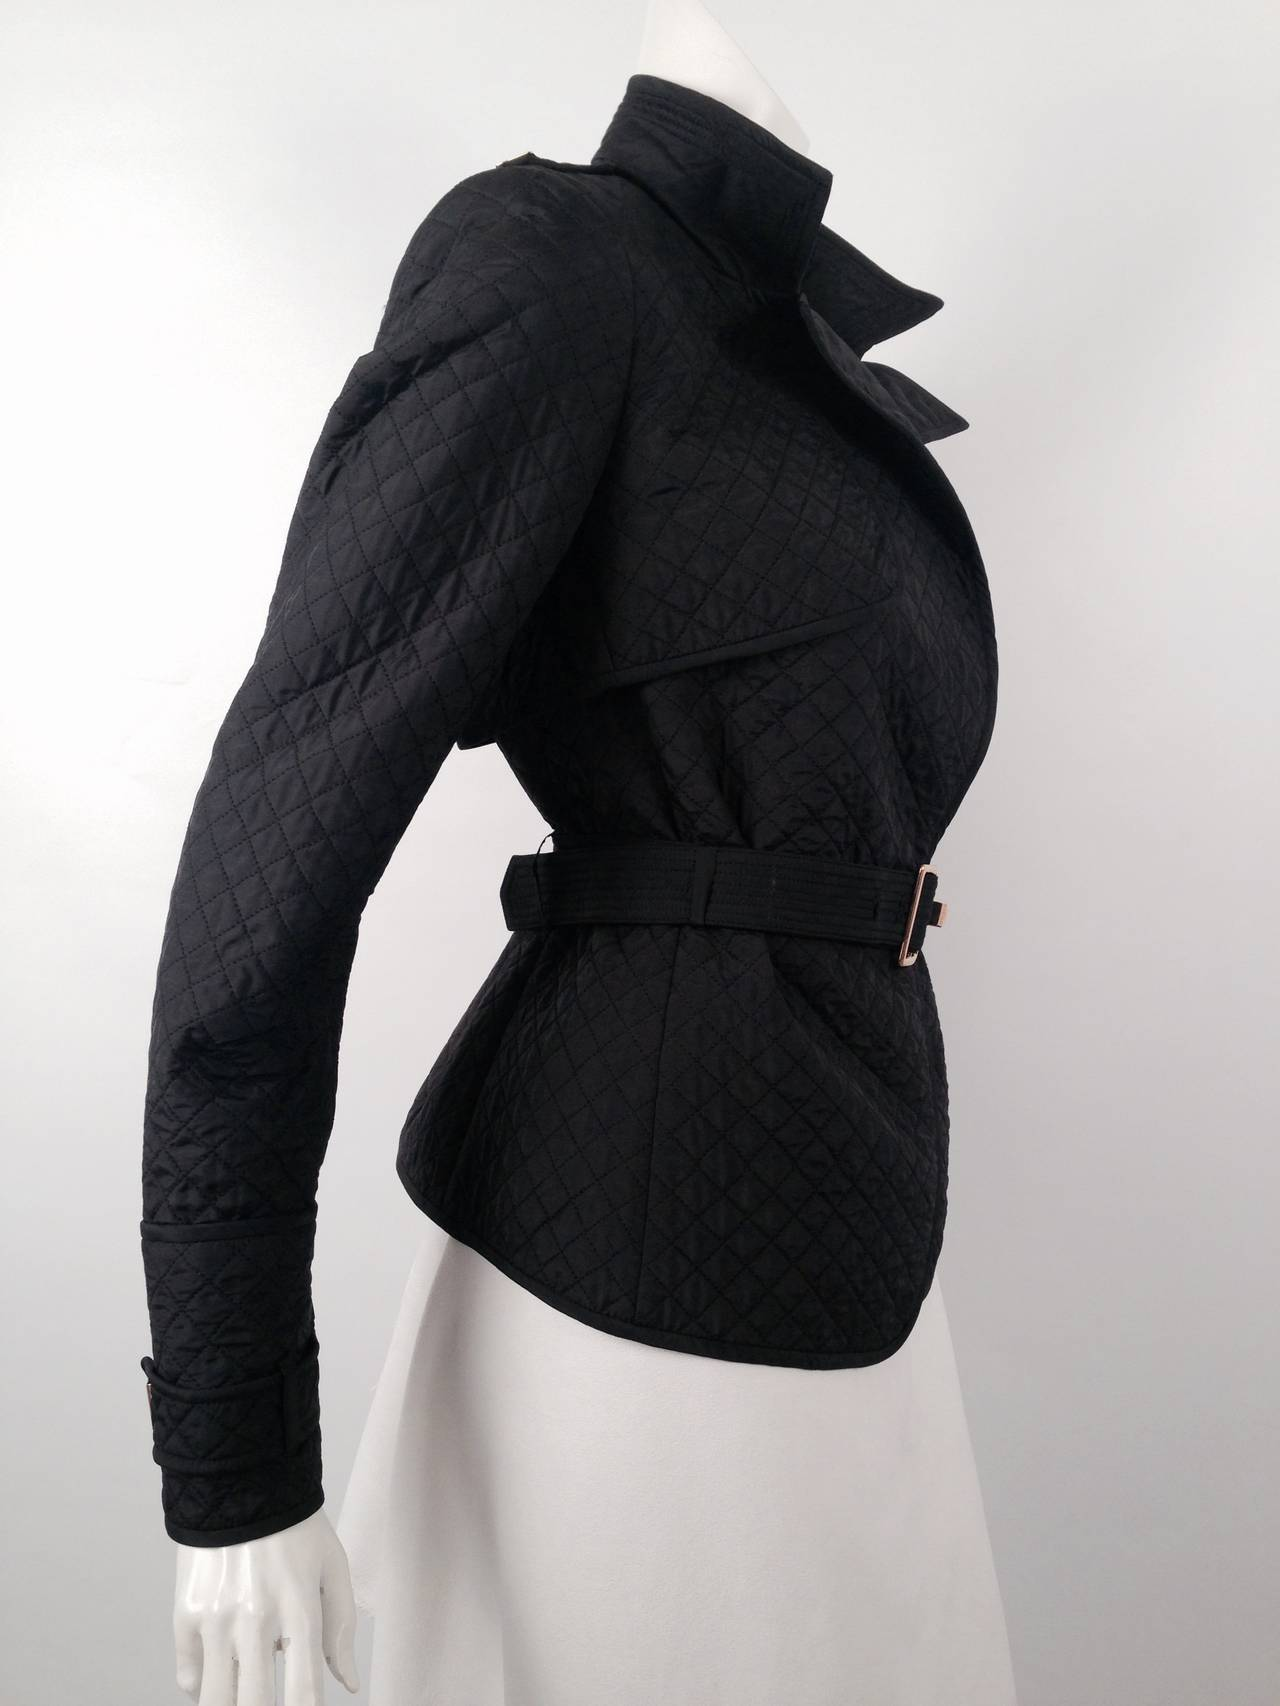 c707e328838 Yves Saint Laurent Rive Gauche Diamond Quilted Jacket In Excellent  Condition For Sale In Palm Beach